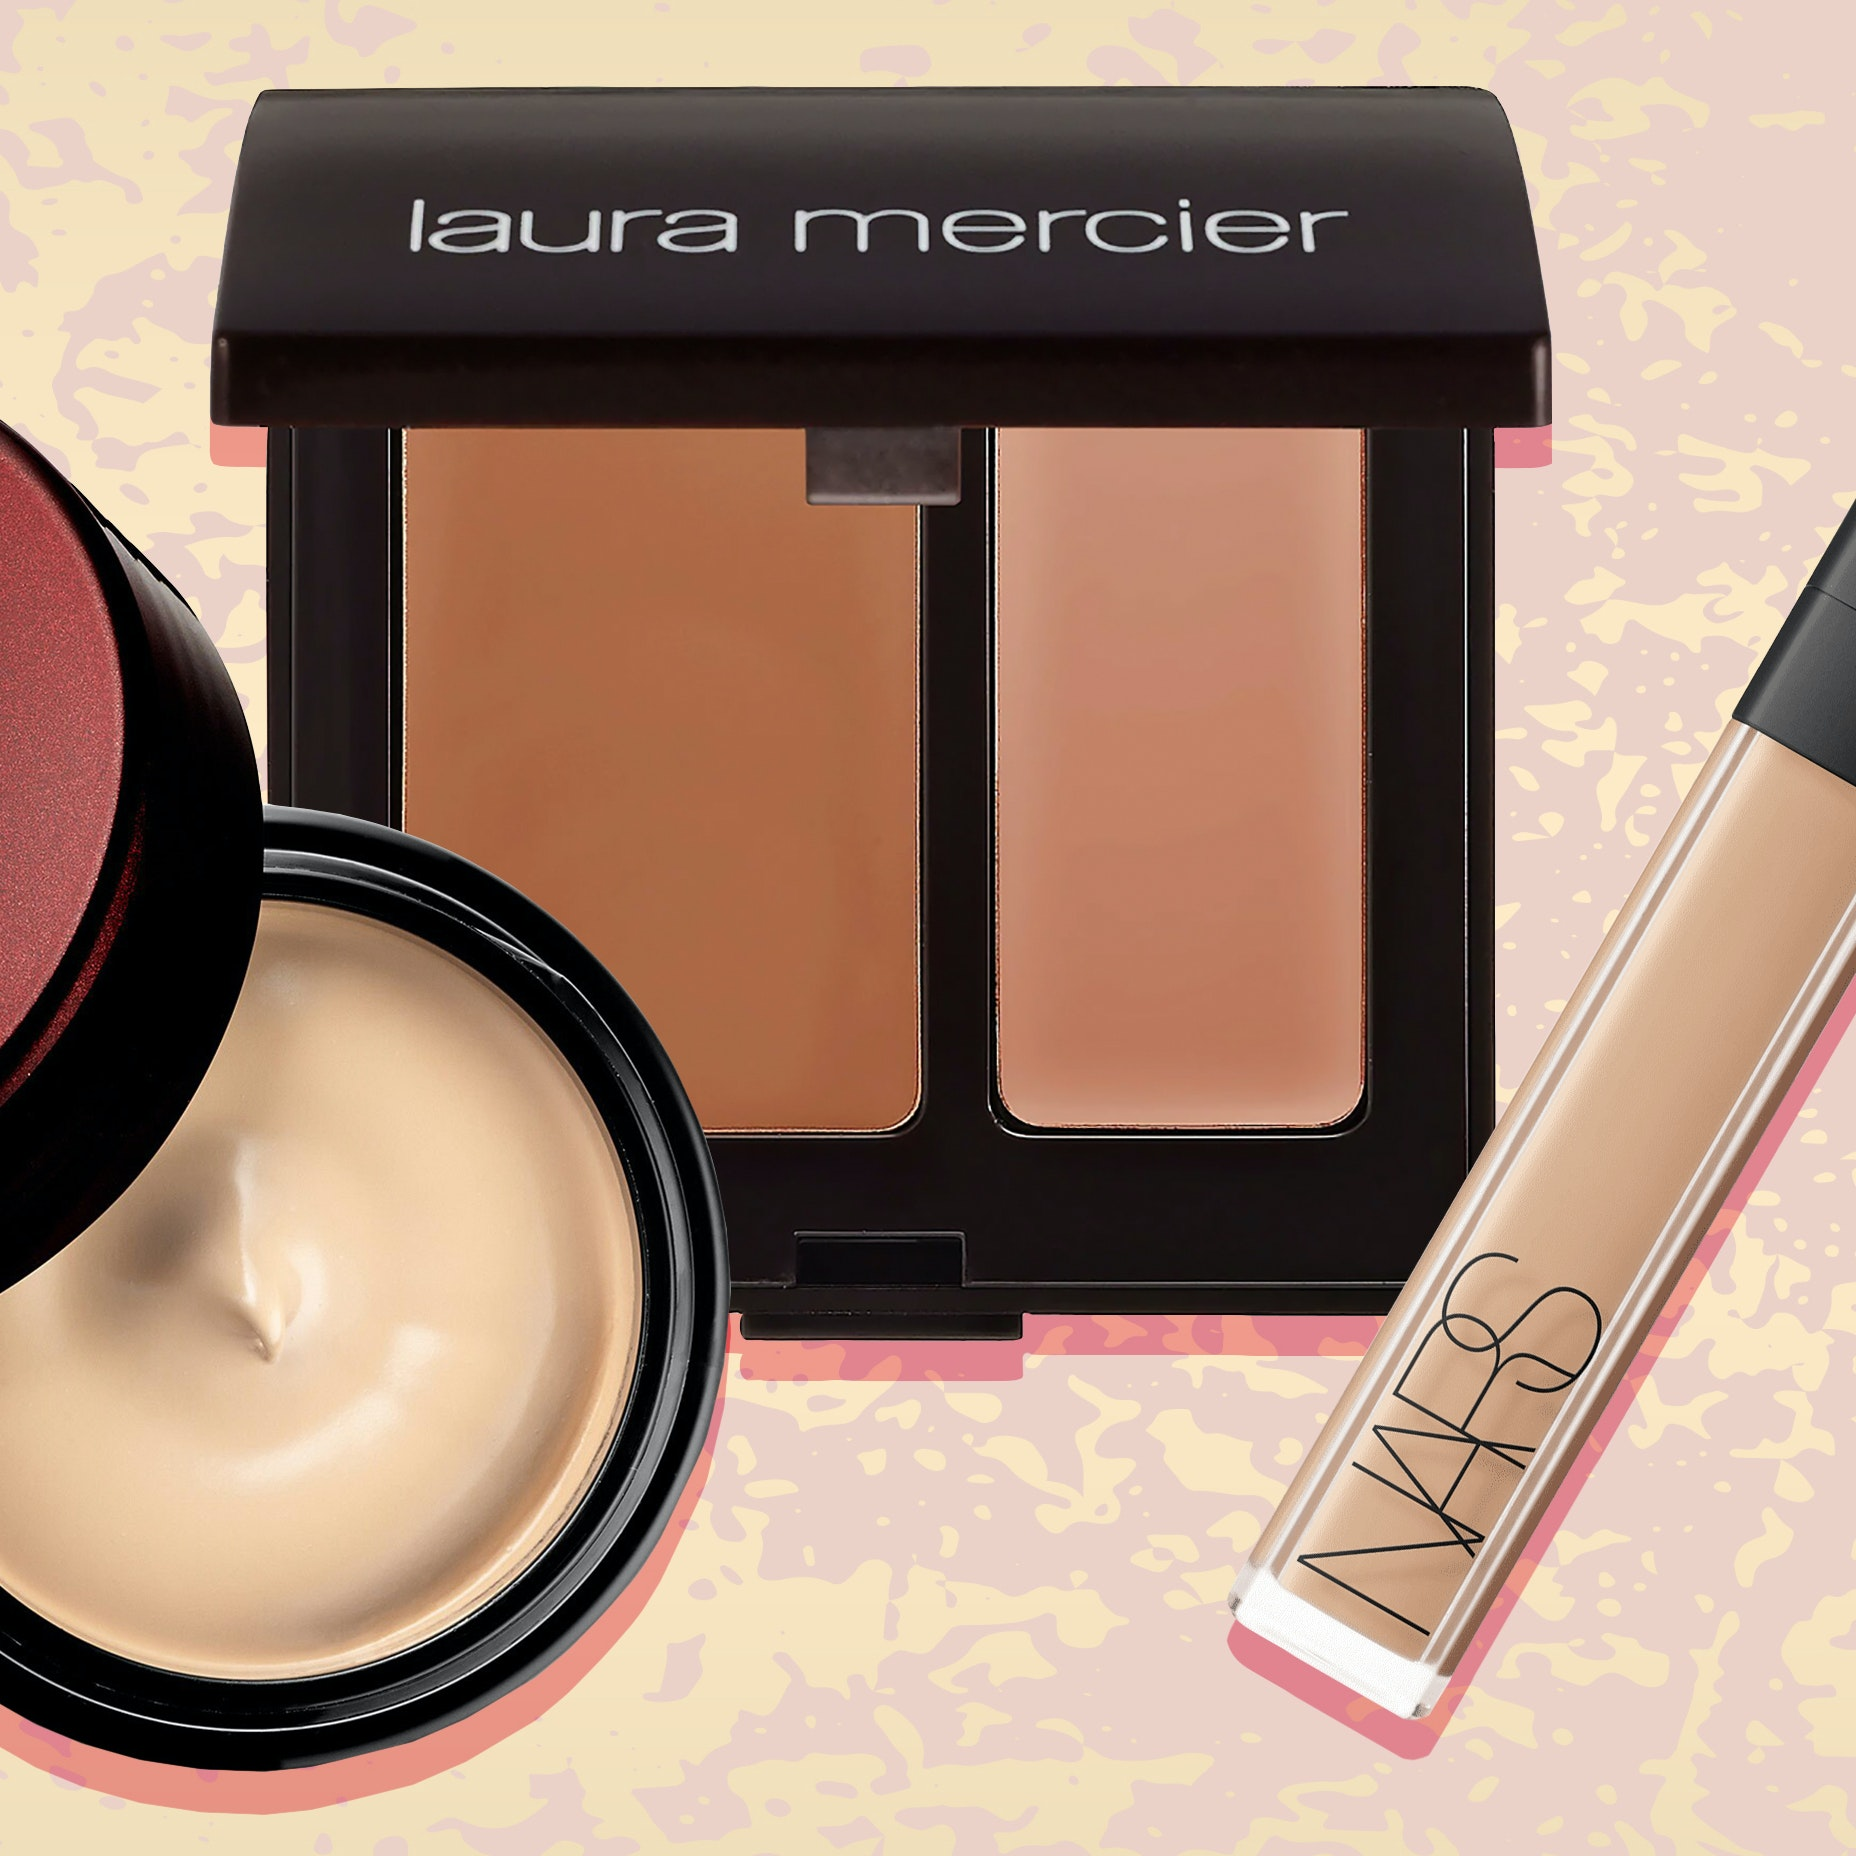 8 Editor-Approved Concealers You Can Rely on to Cover Every Last Pimple, Dark Spot, and Undereye Circle